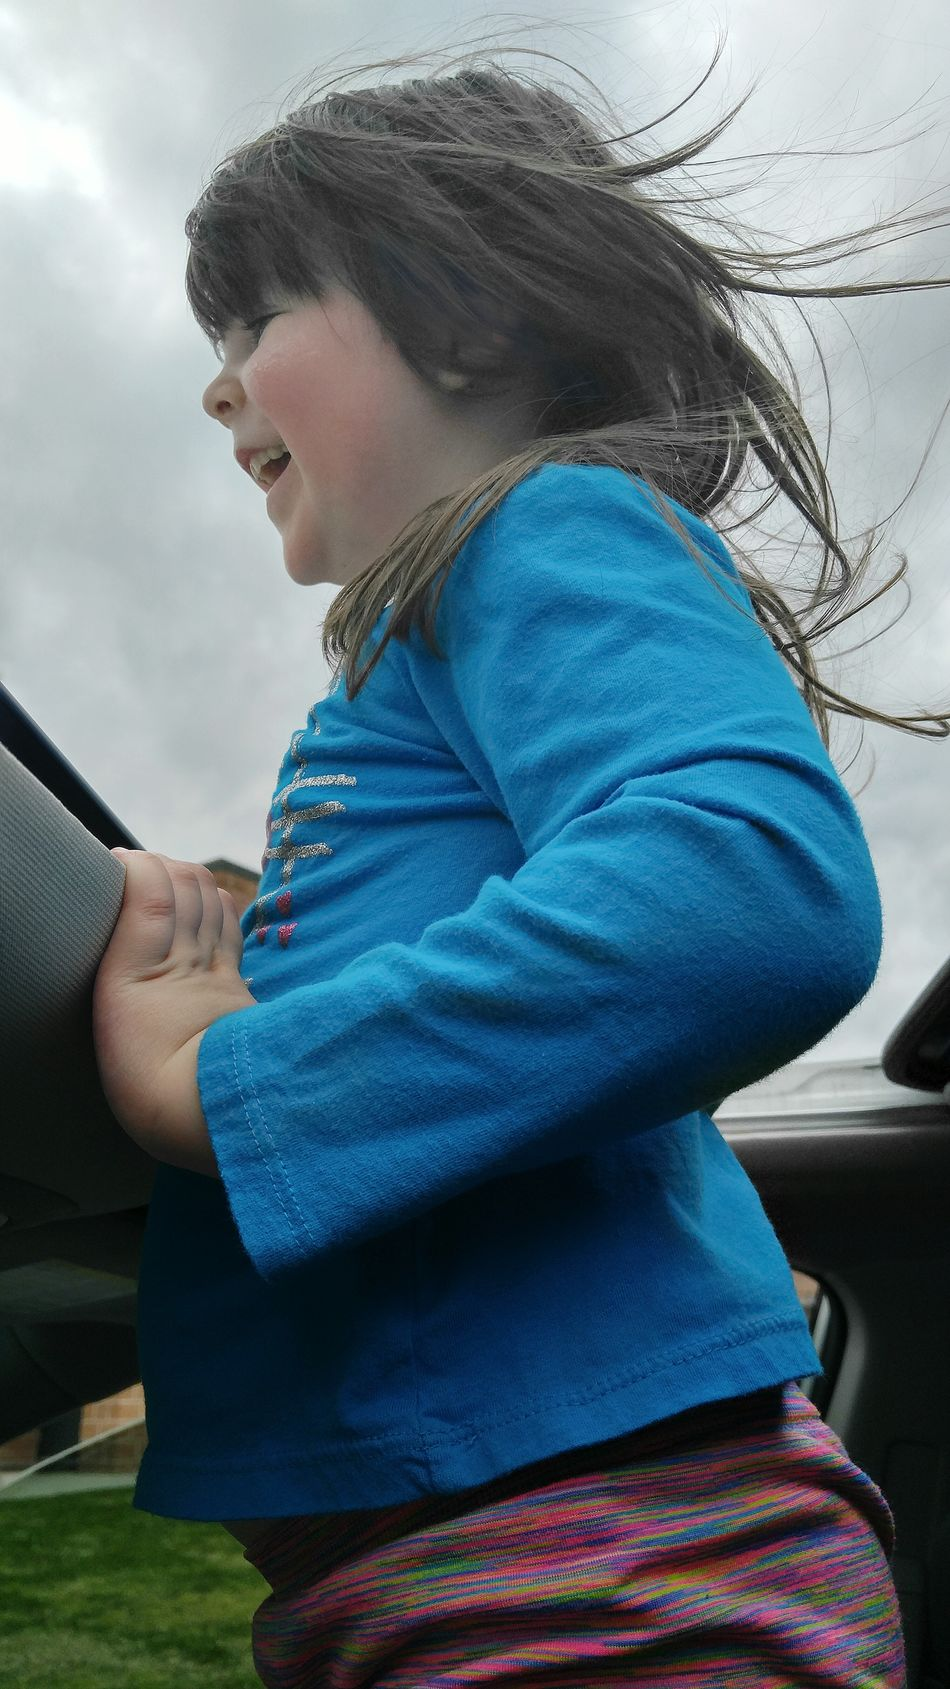 Hanging Out Enjoying Life Children's Portraits Funny Kid Child Photography Kids Being Kids Enjoying Life Windy Day Happy :) Waiting In The Car